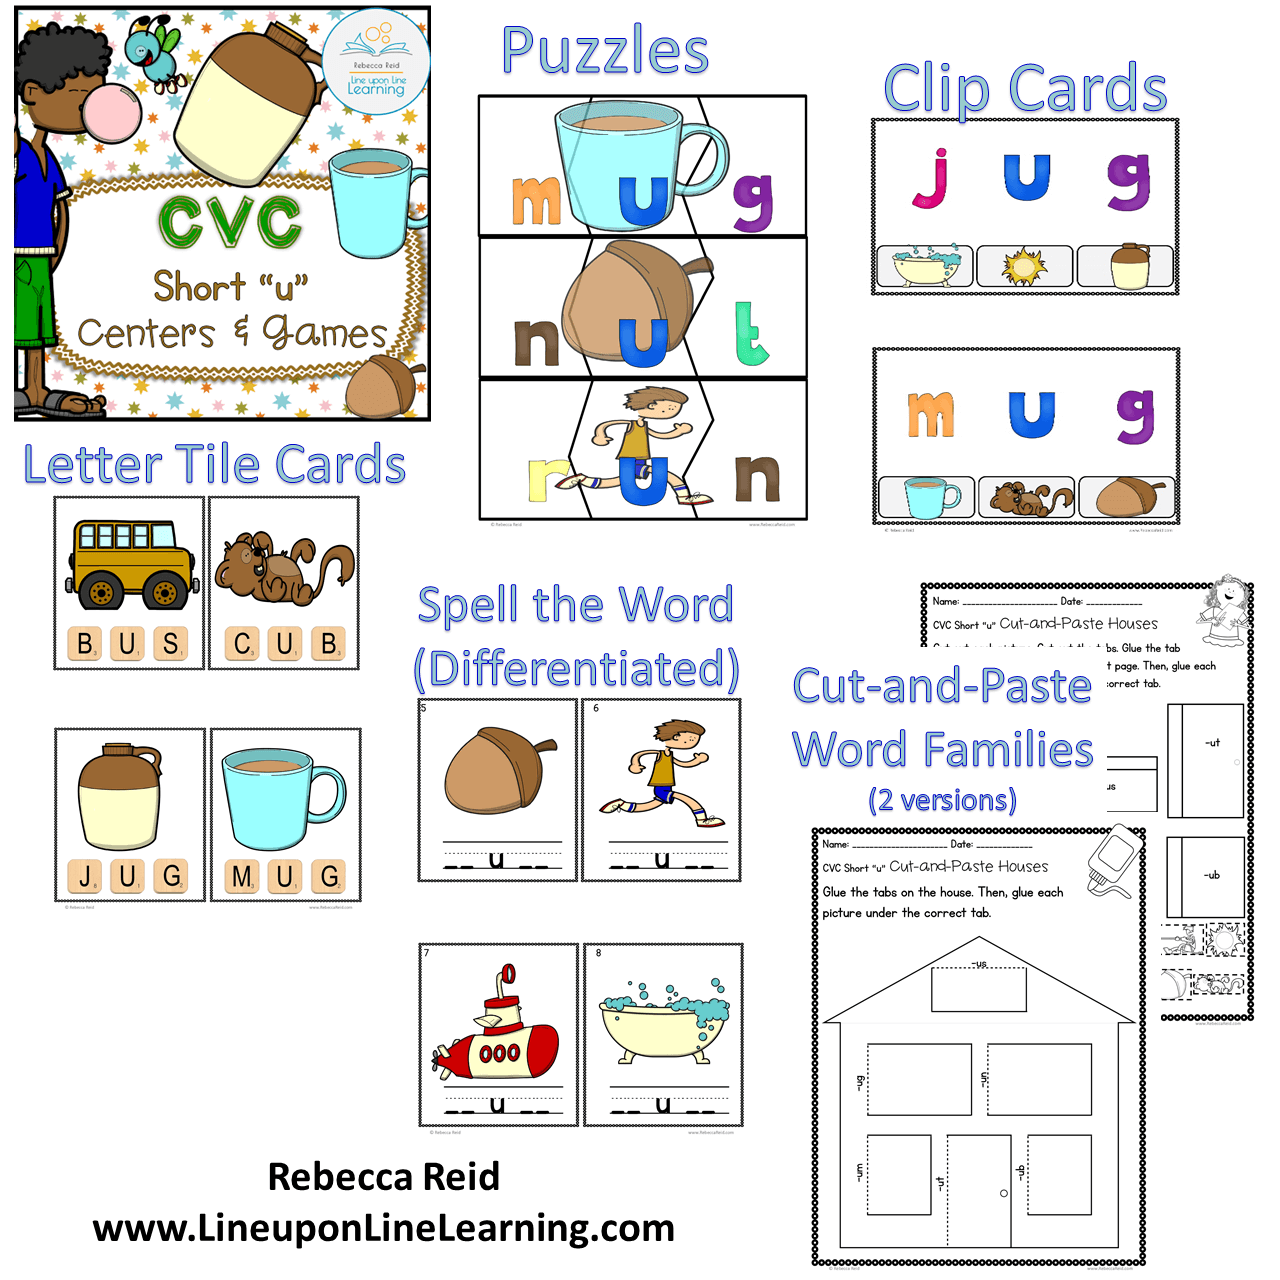 Cvc Short U Centers And Games Line Upon Line Learning